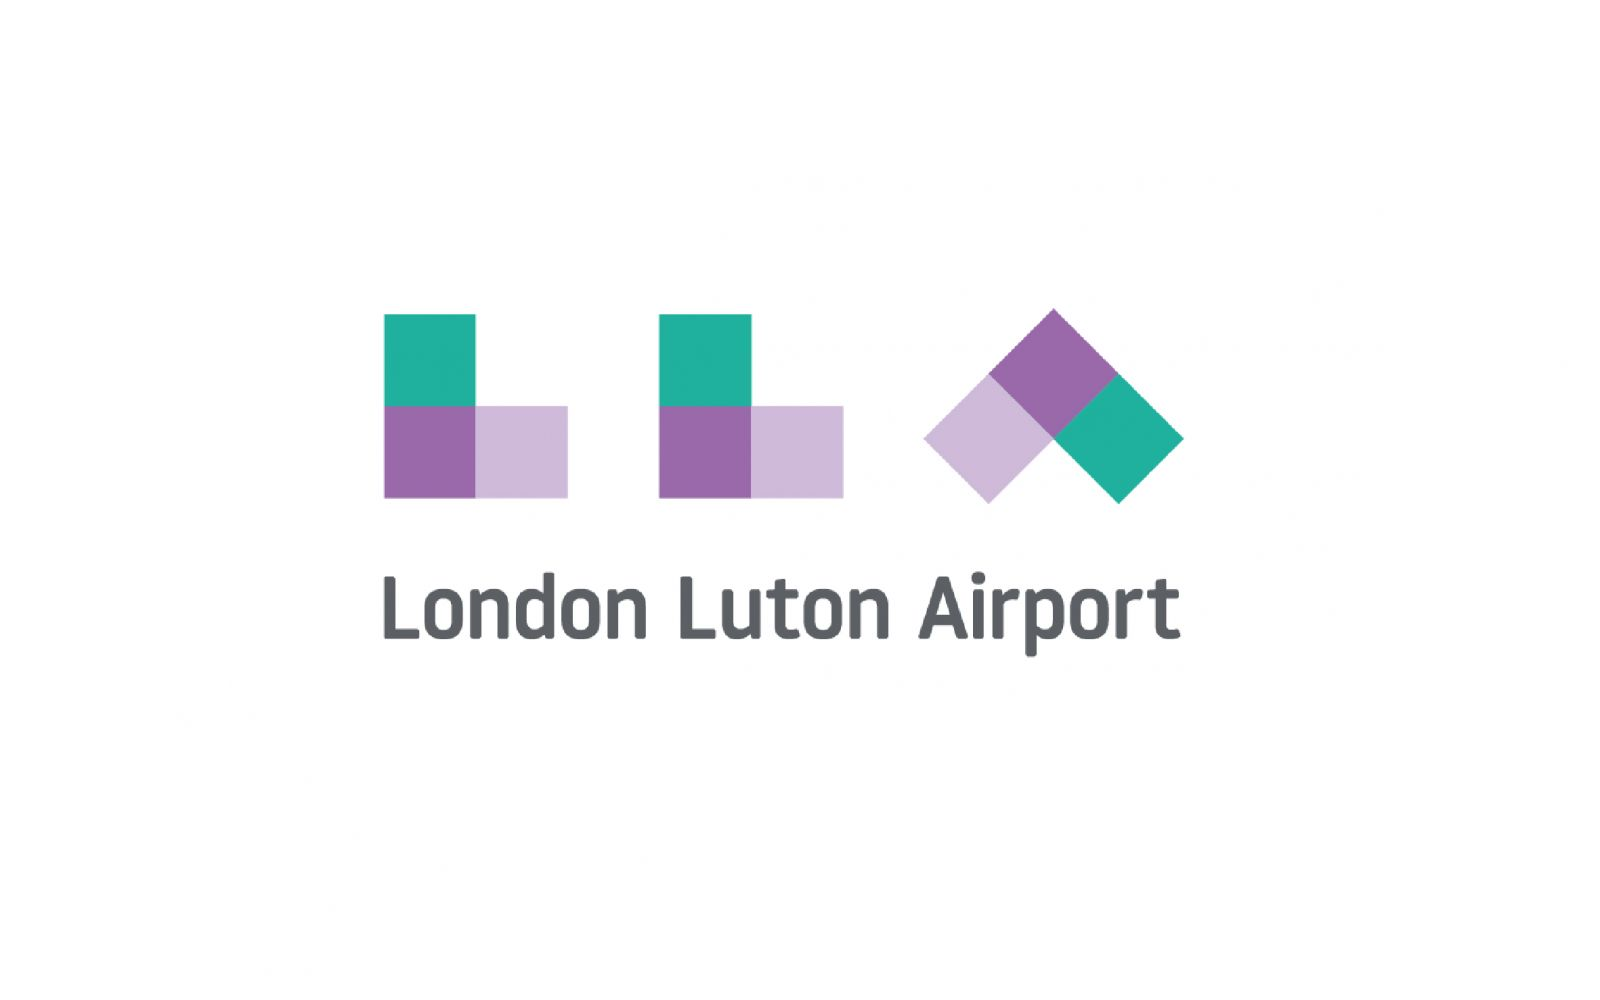 ICTS is responsible for Aviation Security Compliance Management & Training at London Luton Airport